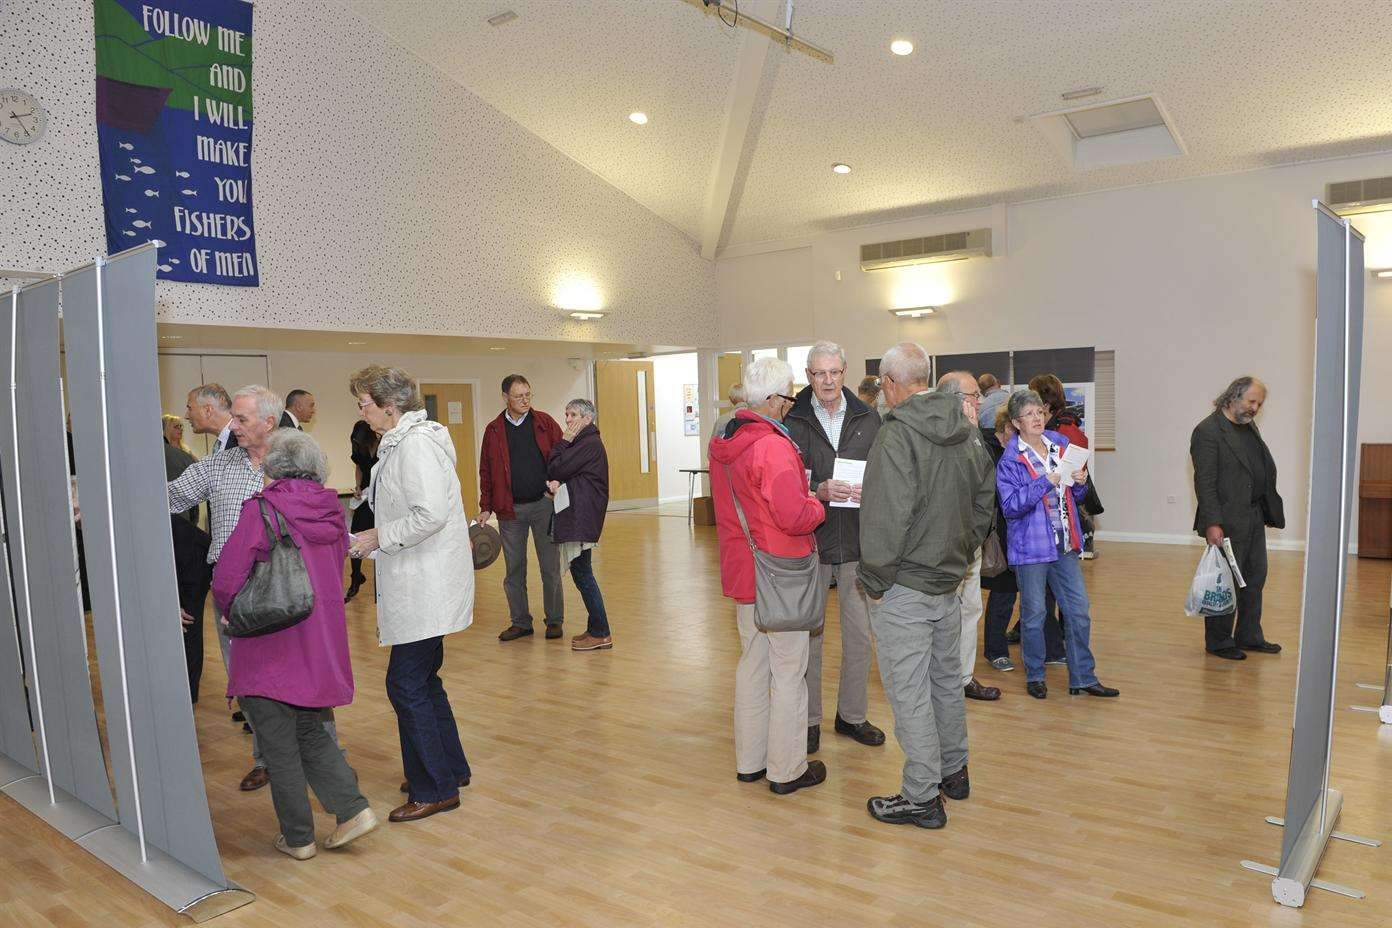 The exhibition attracted nearly 200 residents